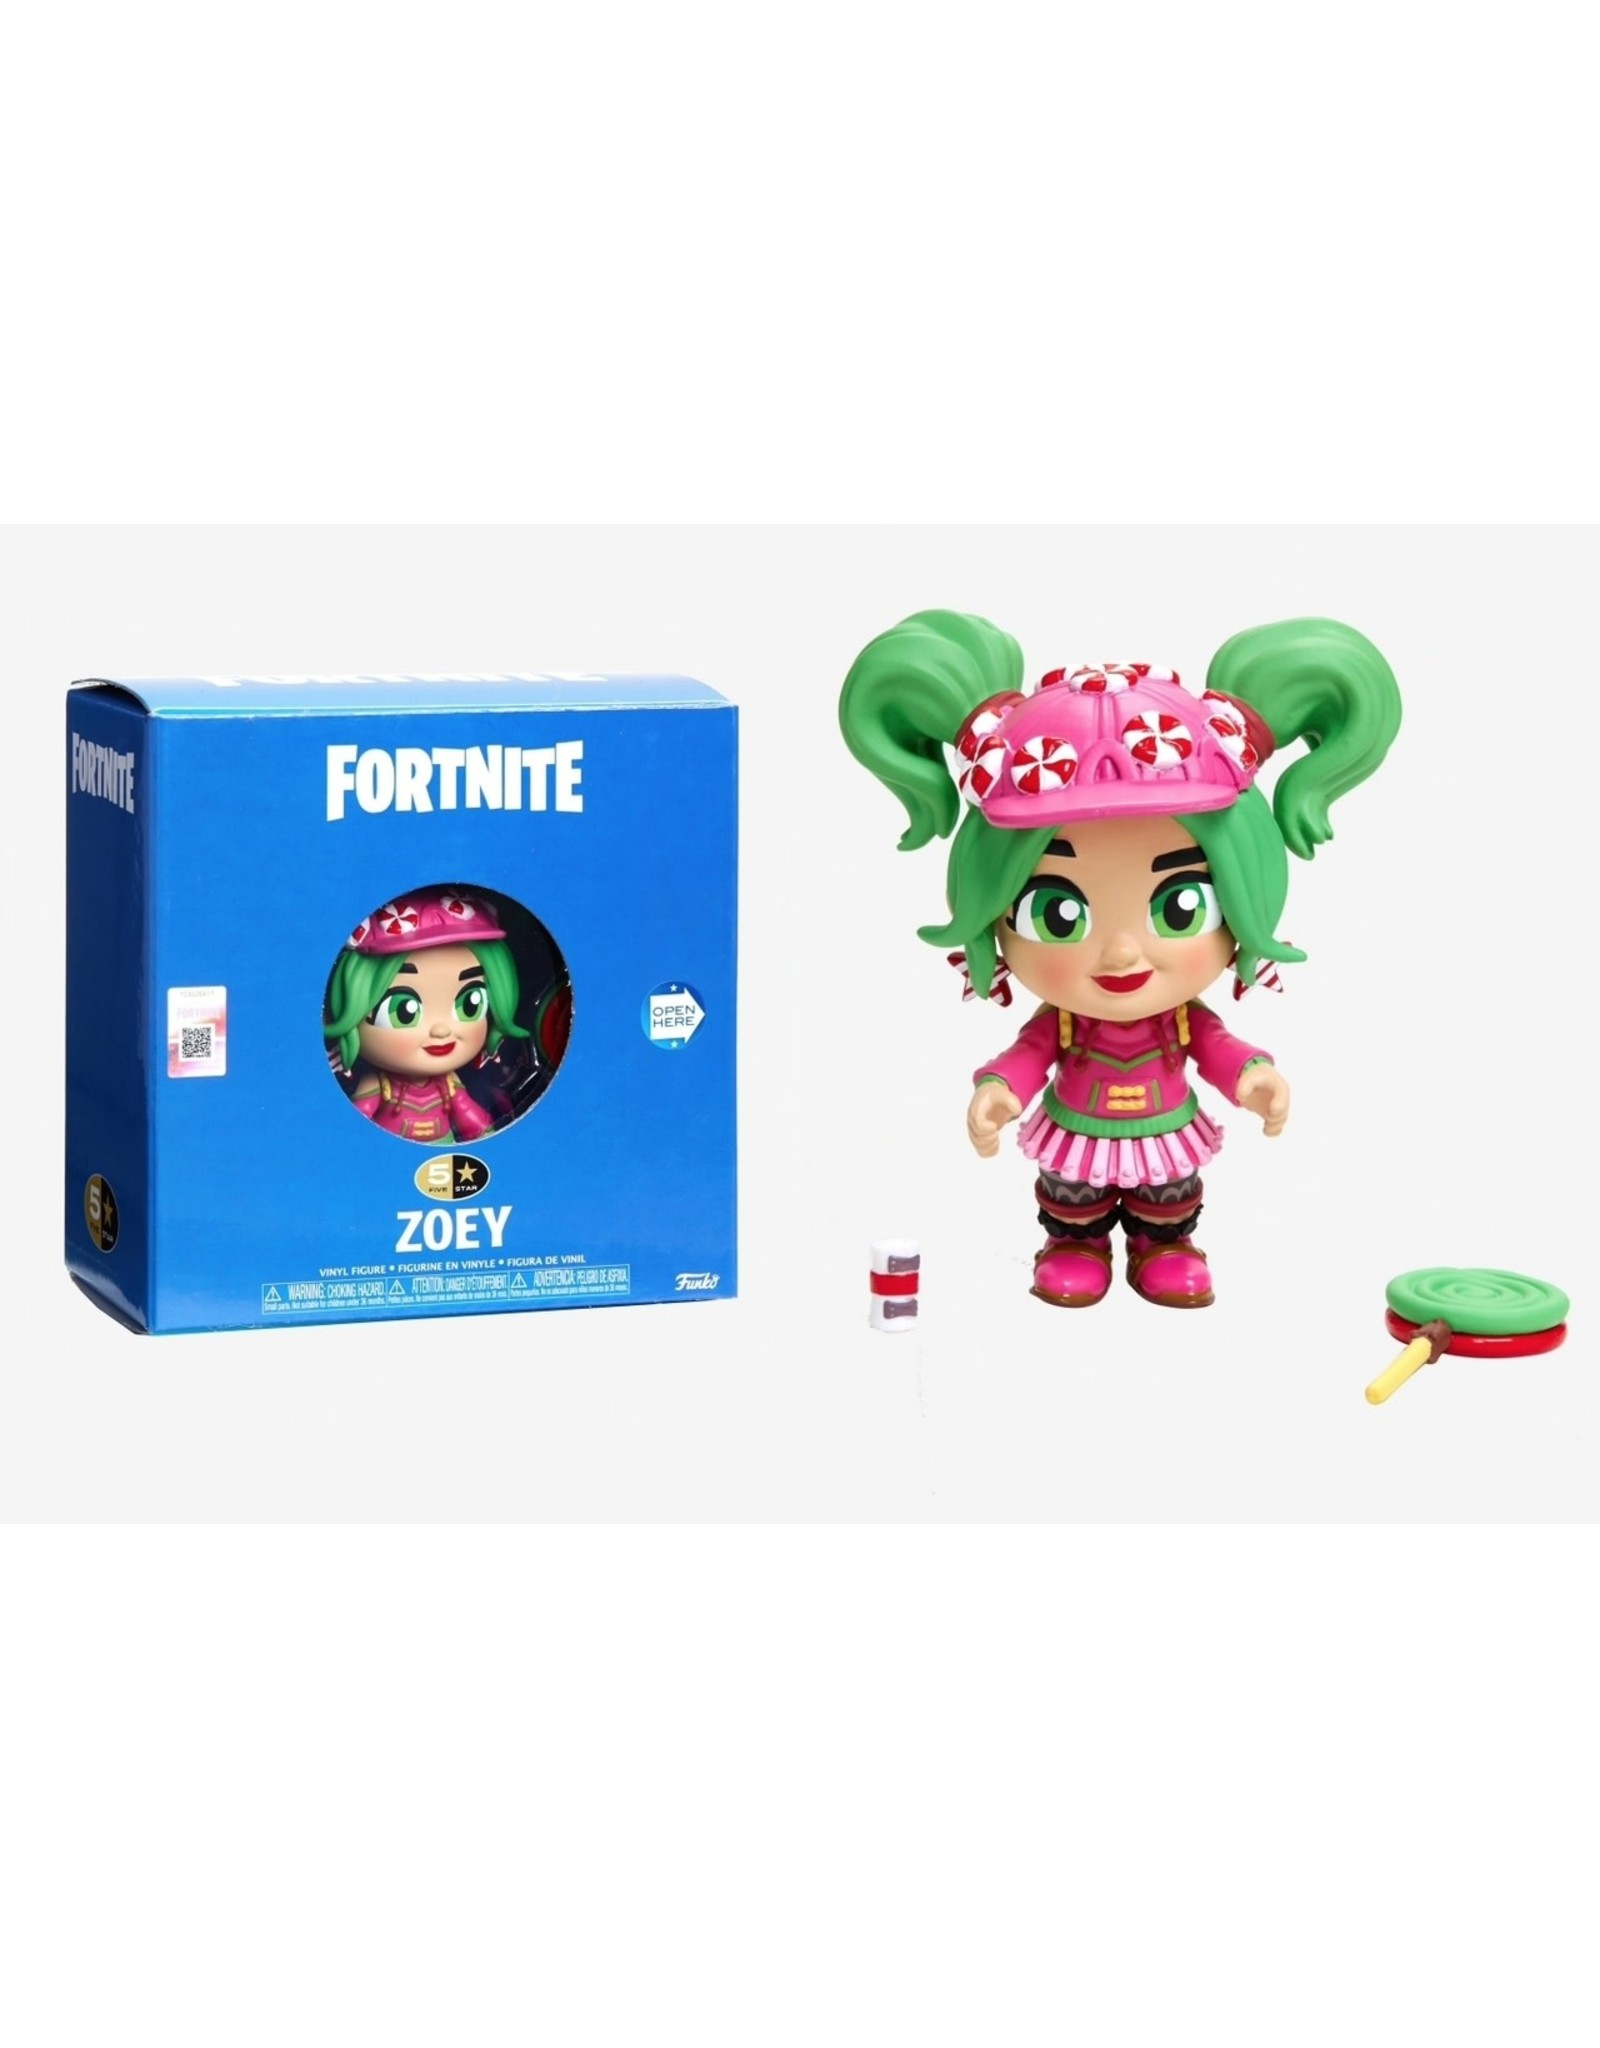 FUNKO 5 STAR FORTNITE ZOEY VINYL FIG